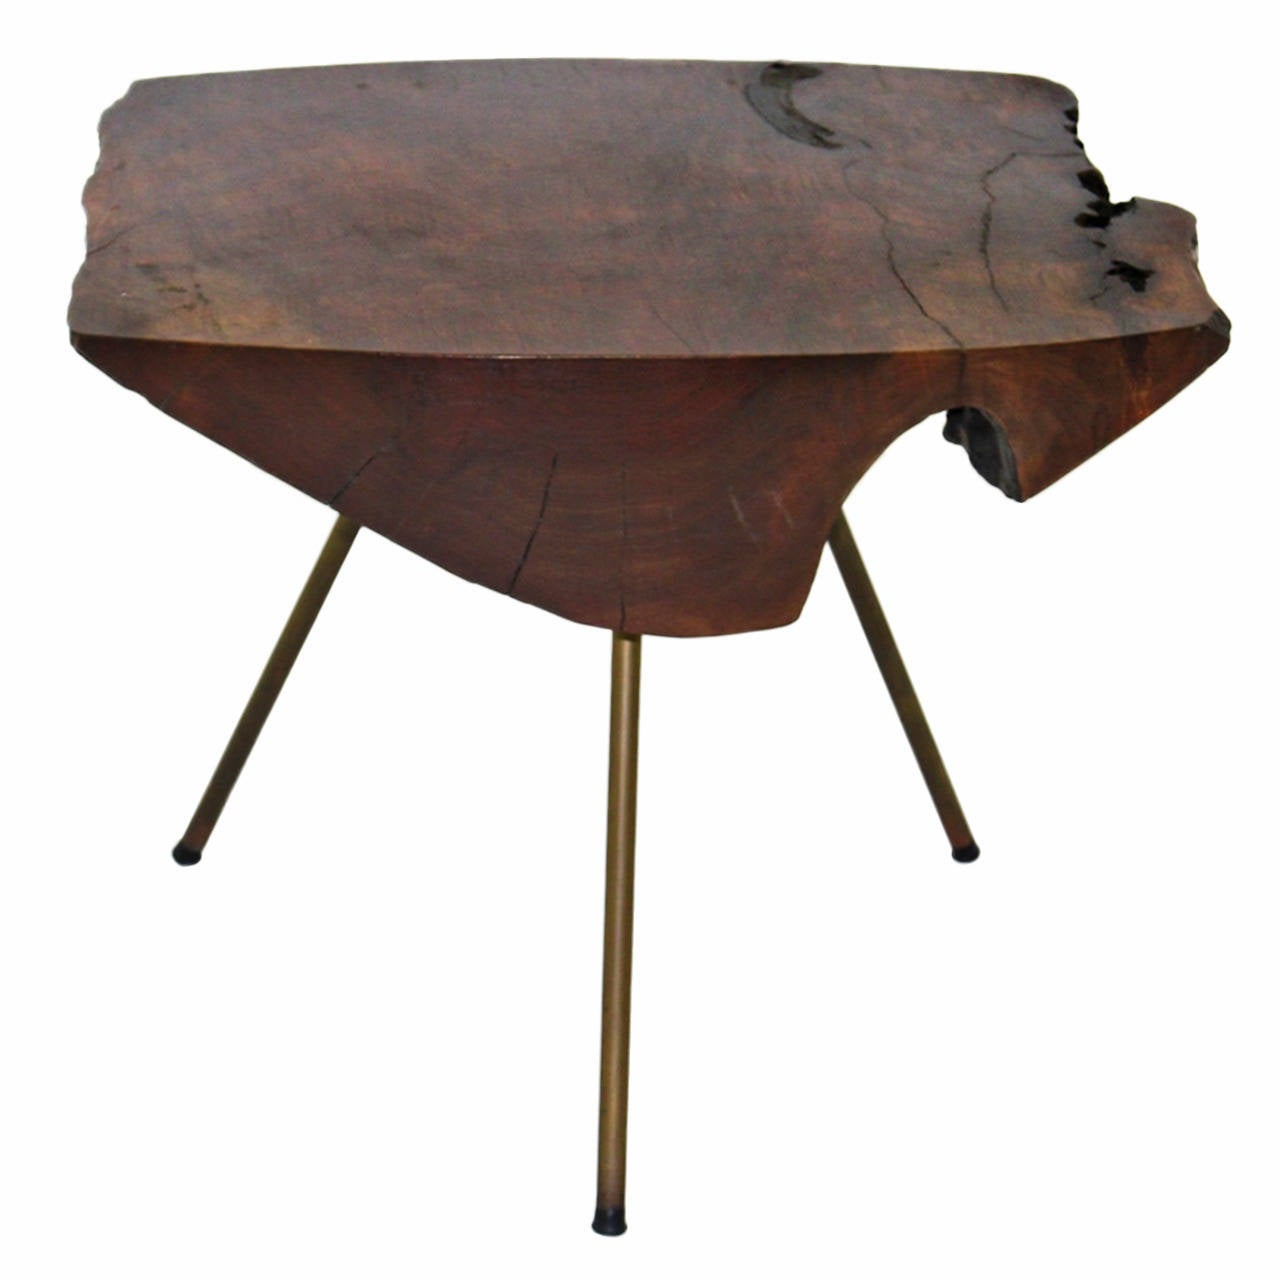 Tree Trunk Table By Carl Aub Ck Vienna Austria 1950s For